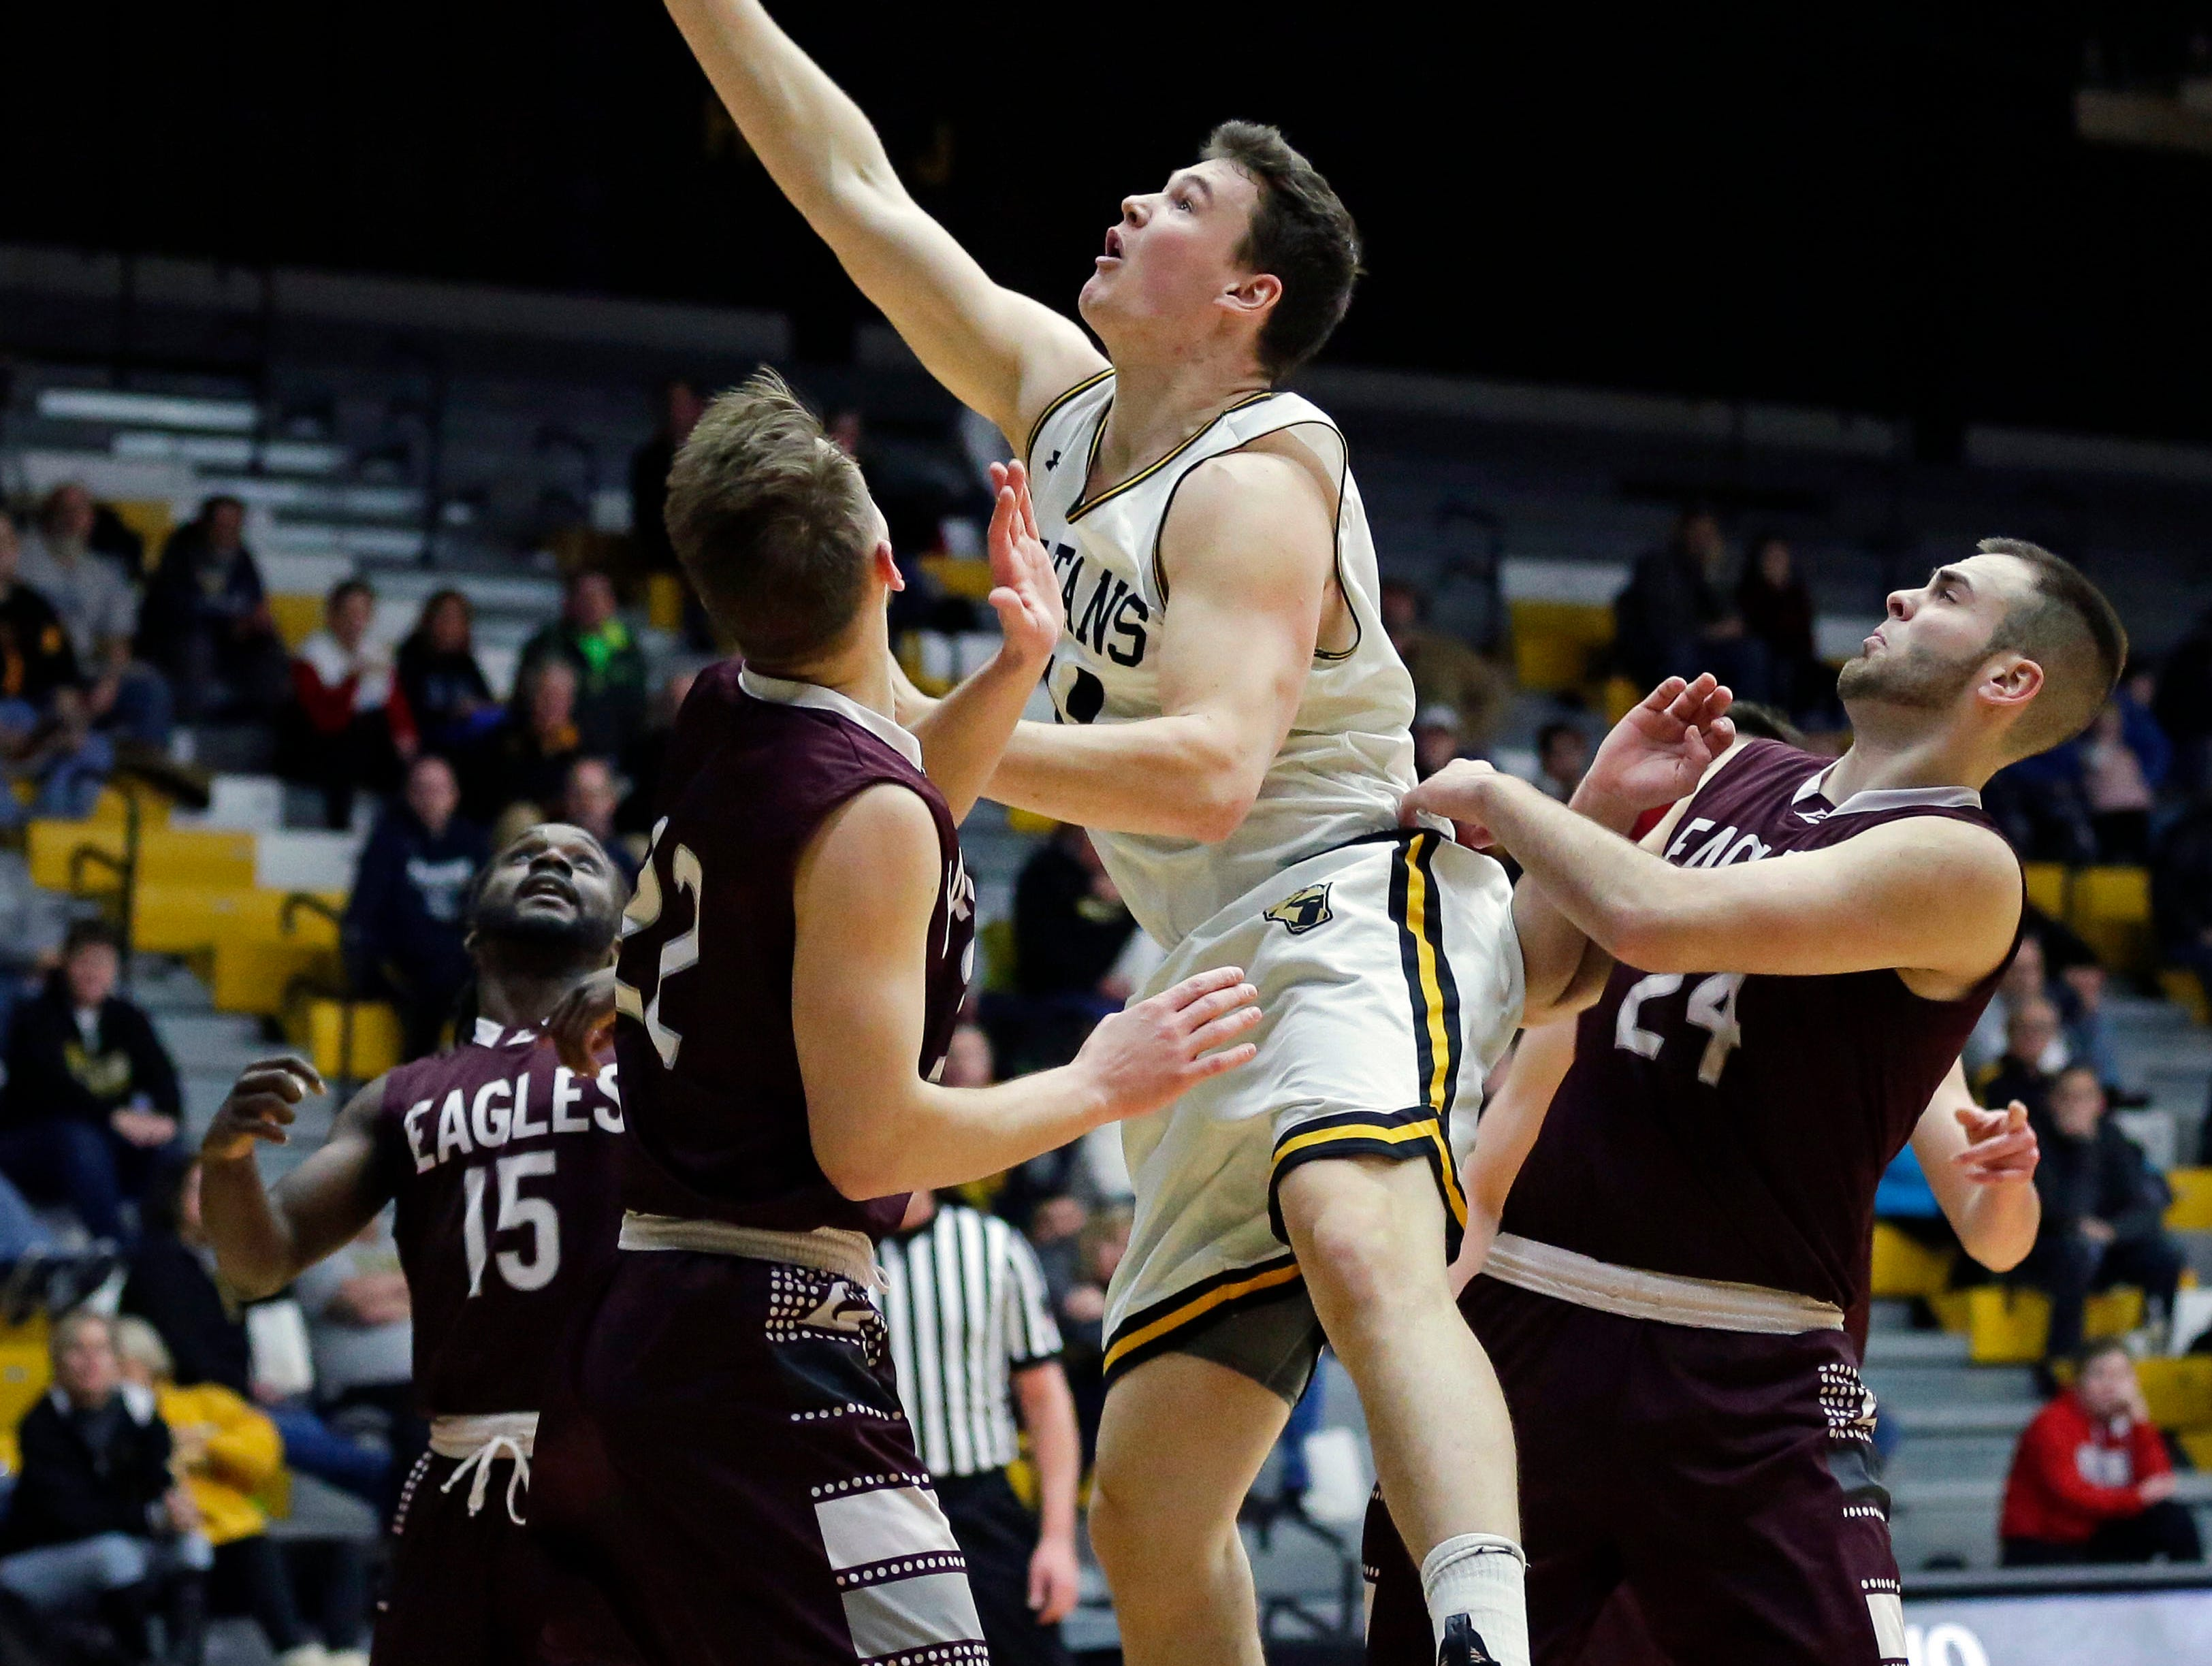 Jack Flynn of UW-Oshkosh goes to the basket against UW-La Crosse in Wisconsin Intercollegiate Athletic Conference basketball Saturday, January 19, 2019, at Kolf Sports Center in Oshkosh, Wis. 